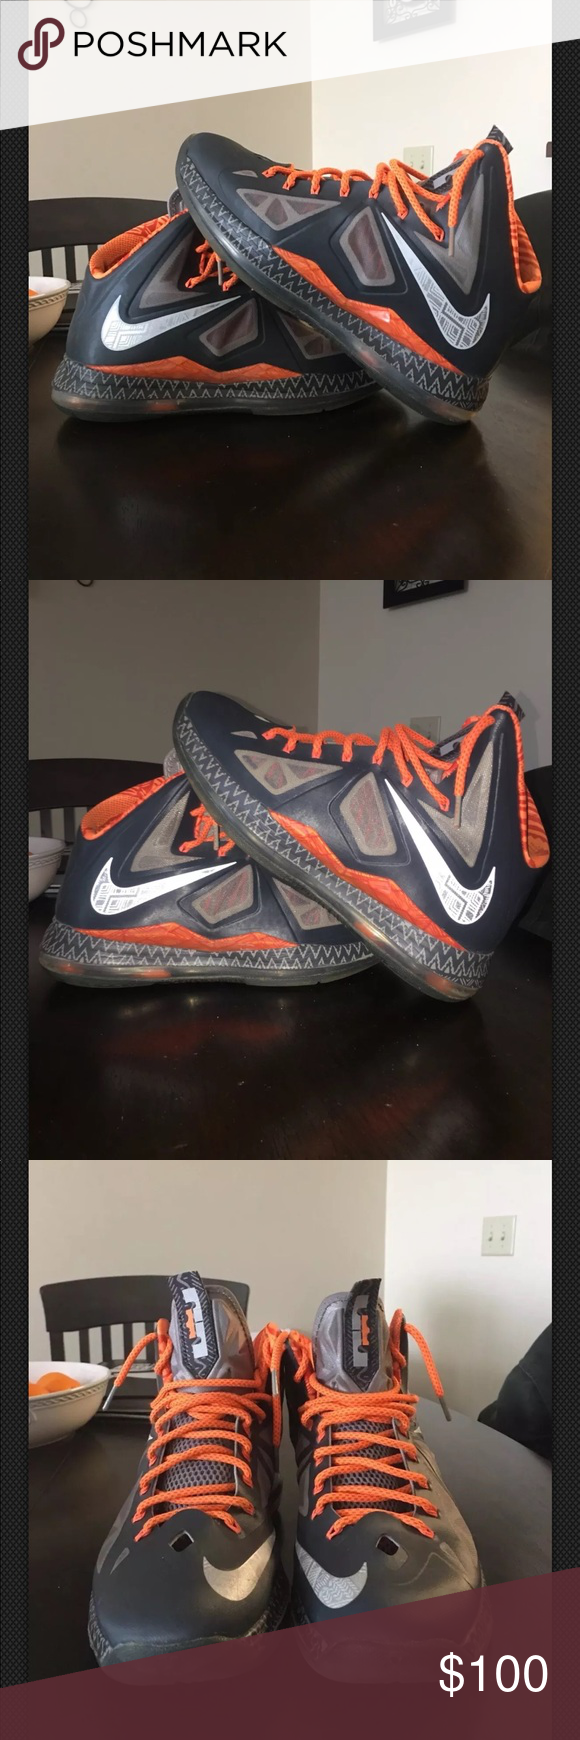 official photos 115bf f5810 Nike Lebron 10 X BHM (Black History Month) Worn a couple times still in